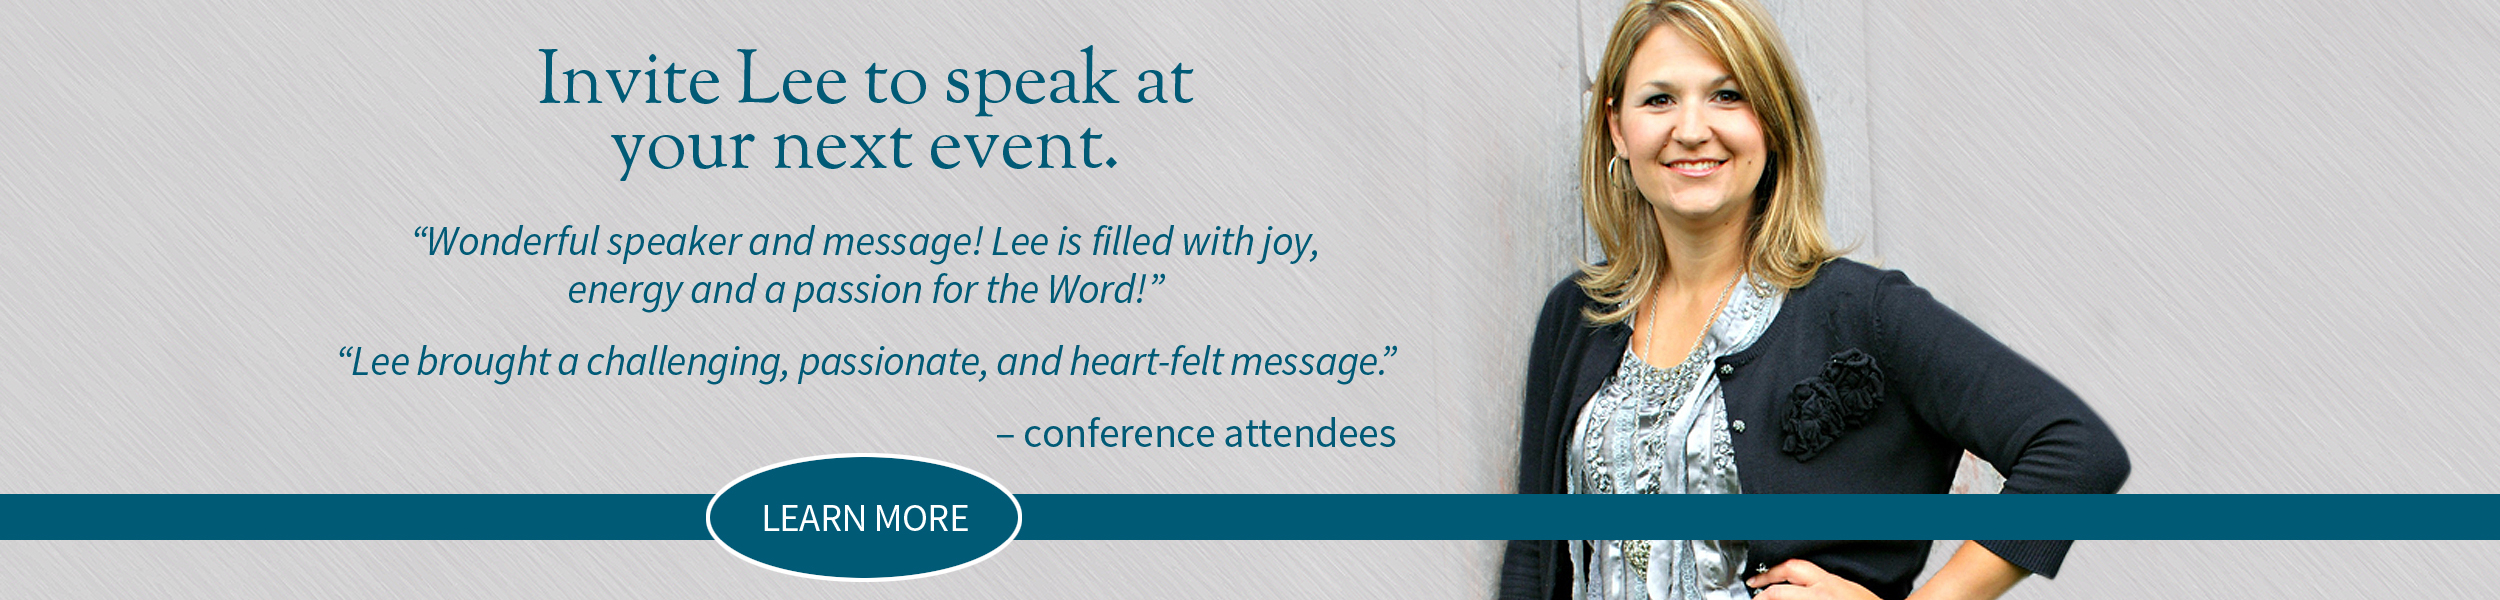 Invite Lee to Your Next Event